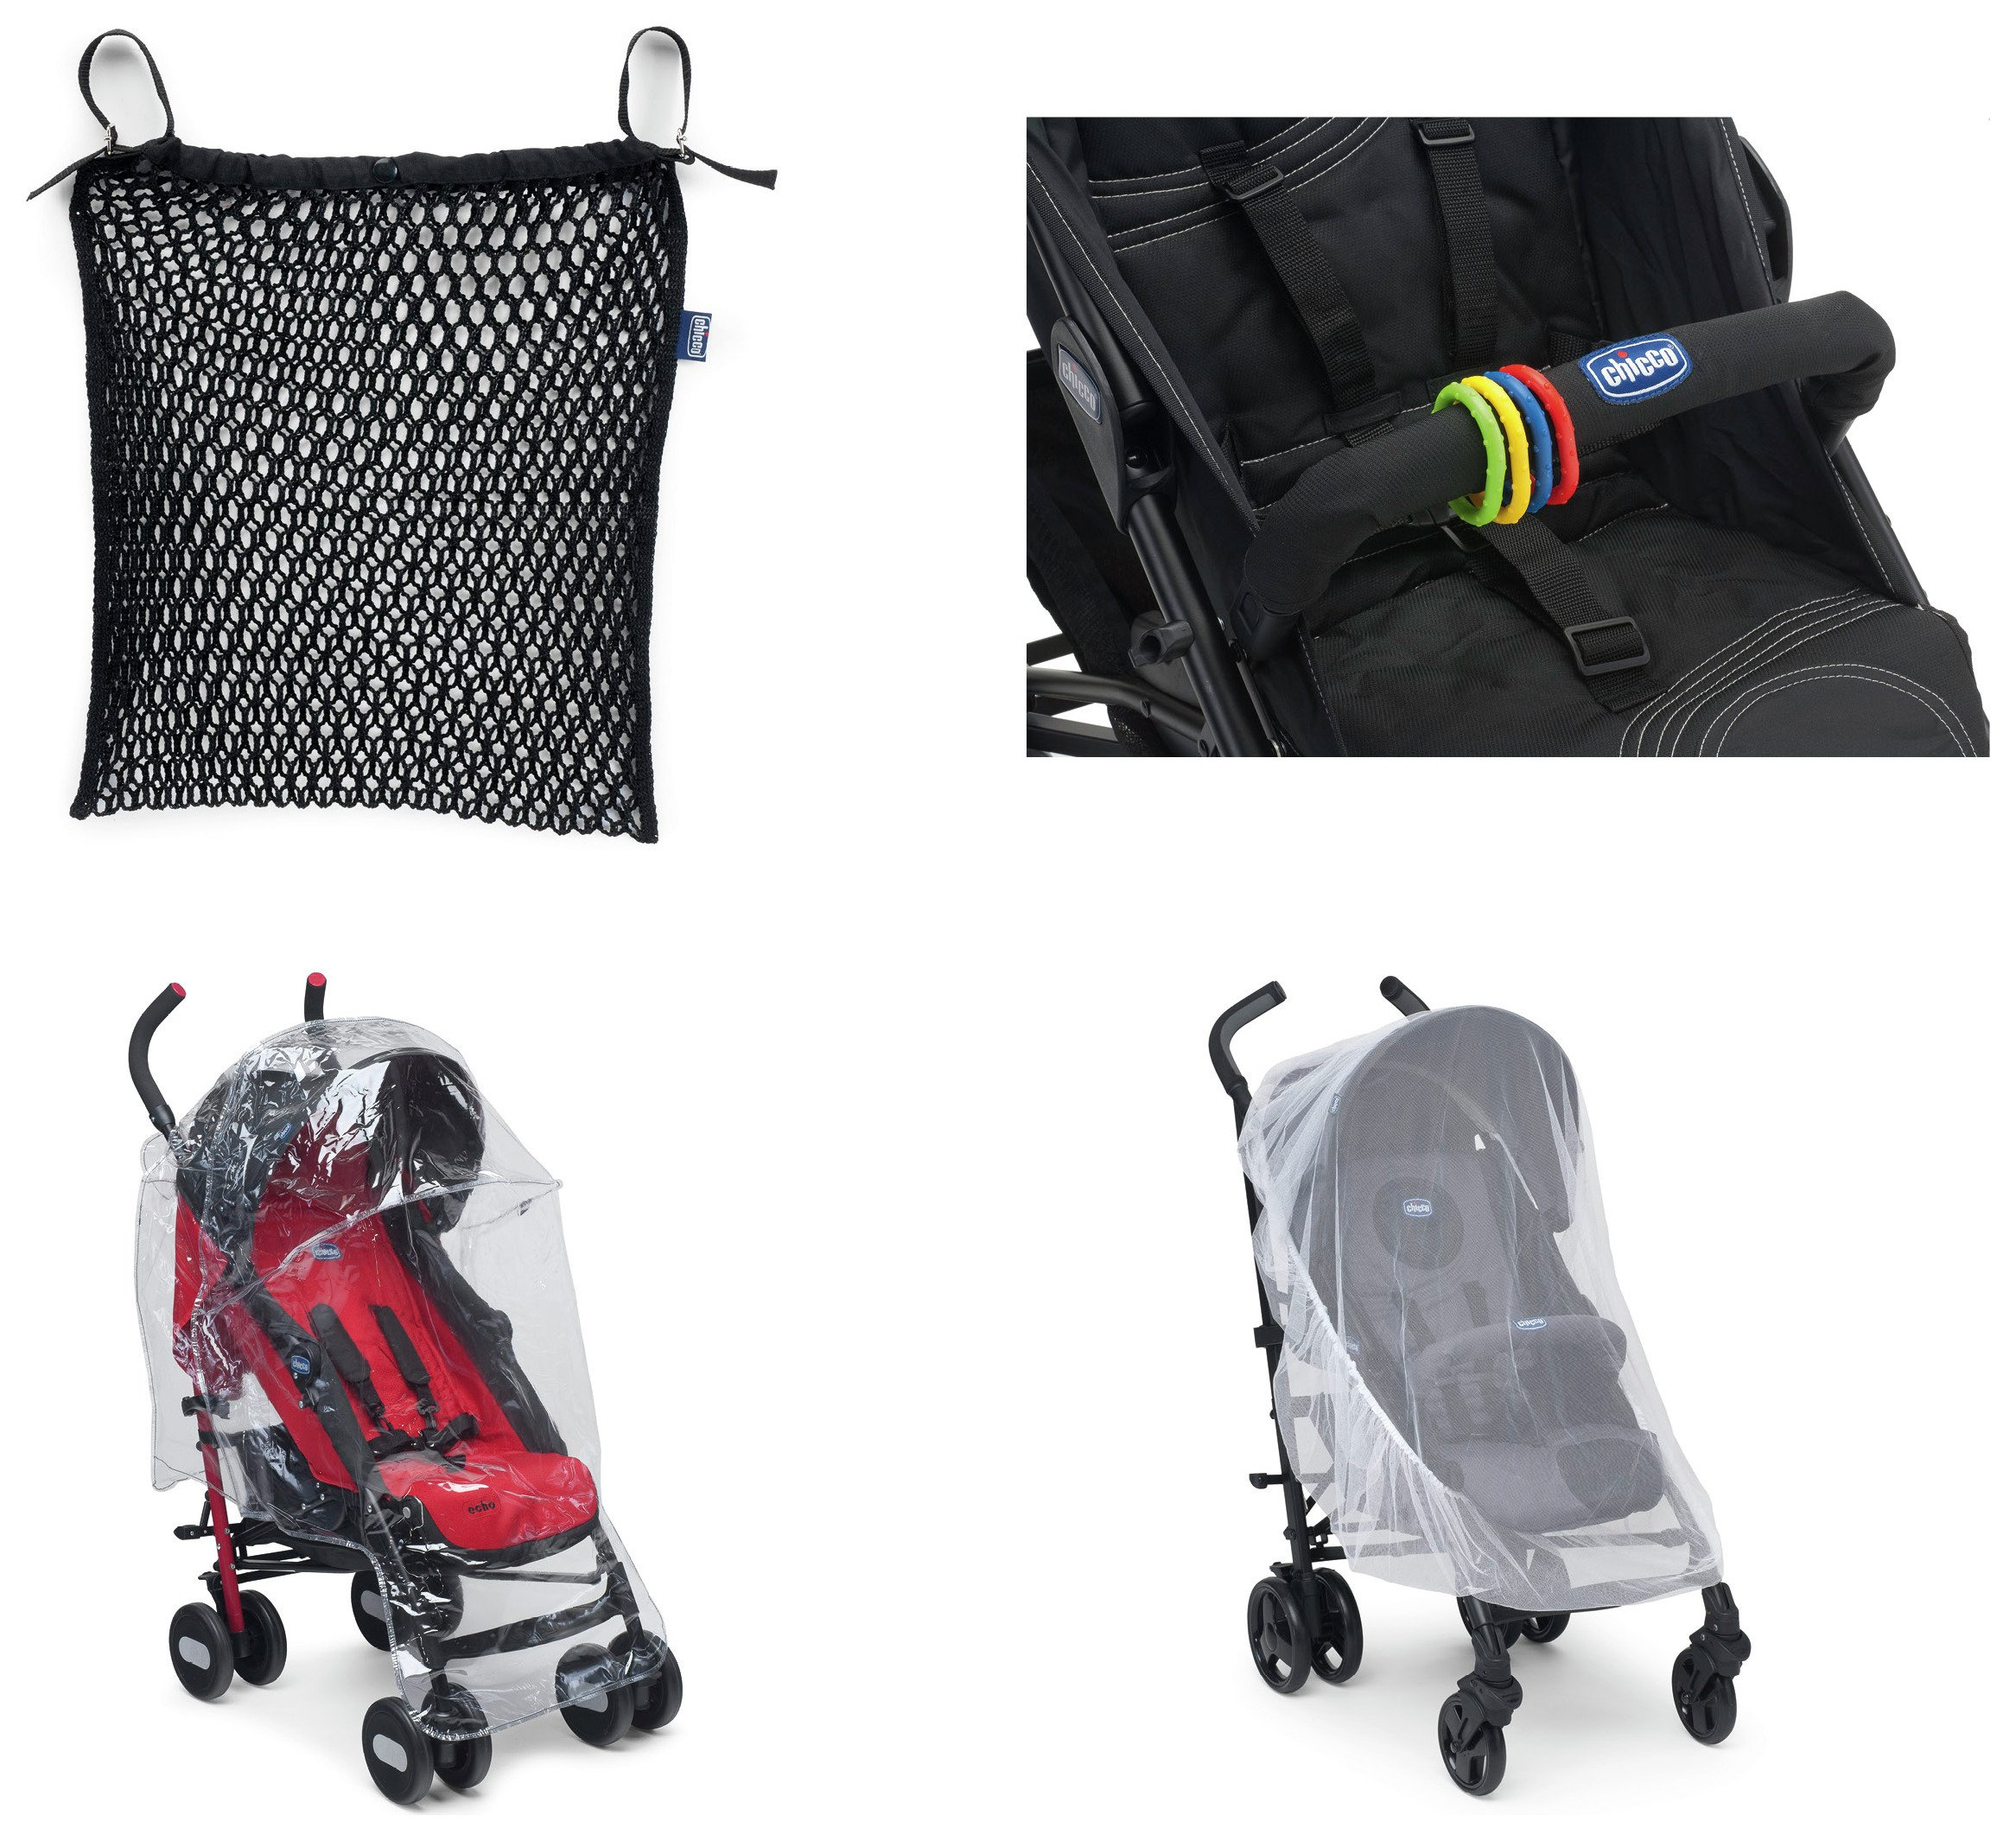 Image of Chicco Pushchair Basics Kit.